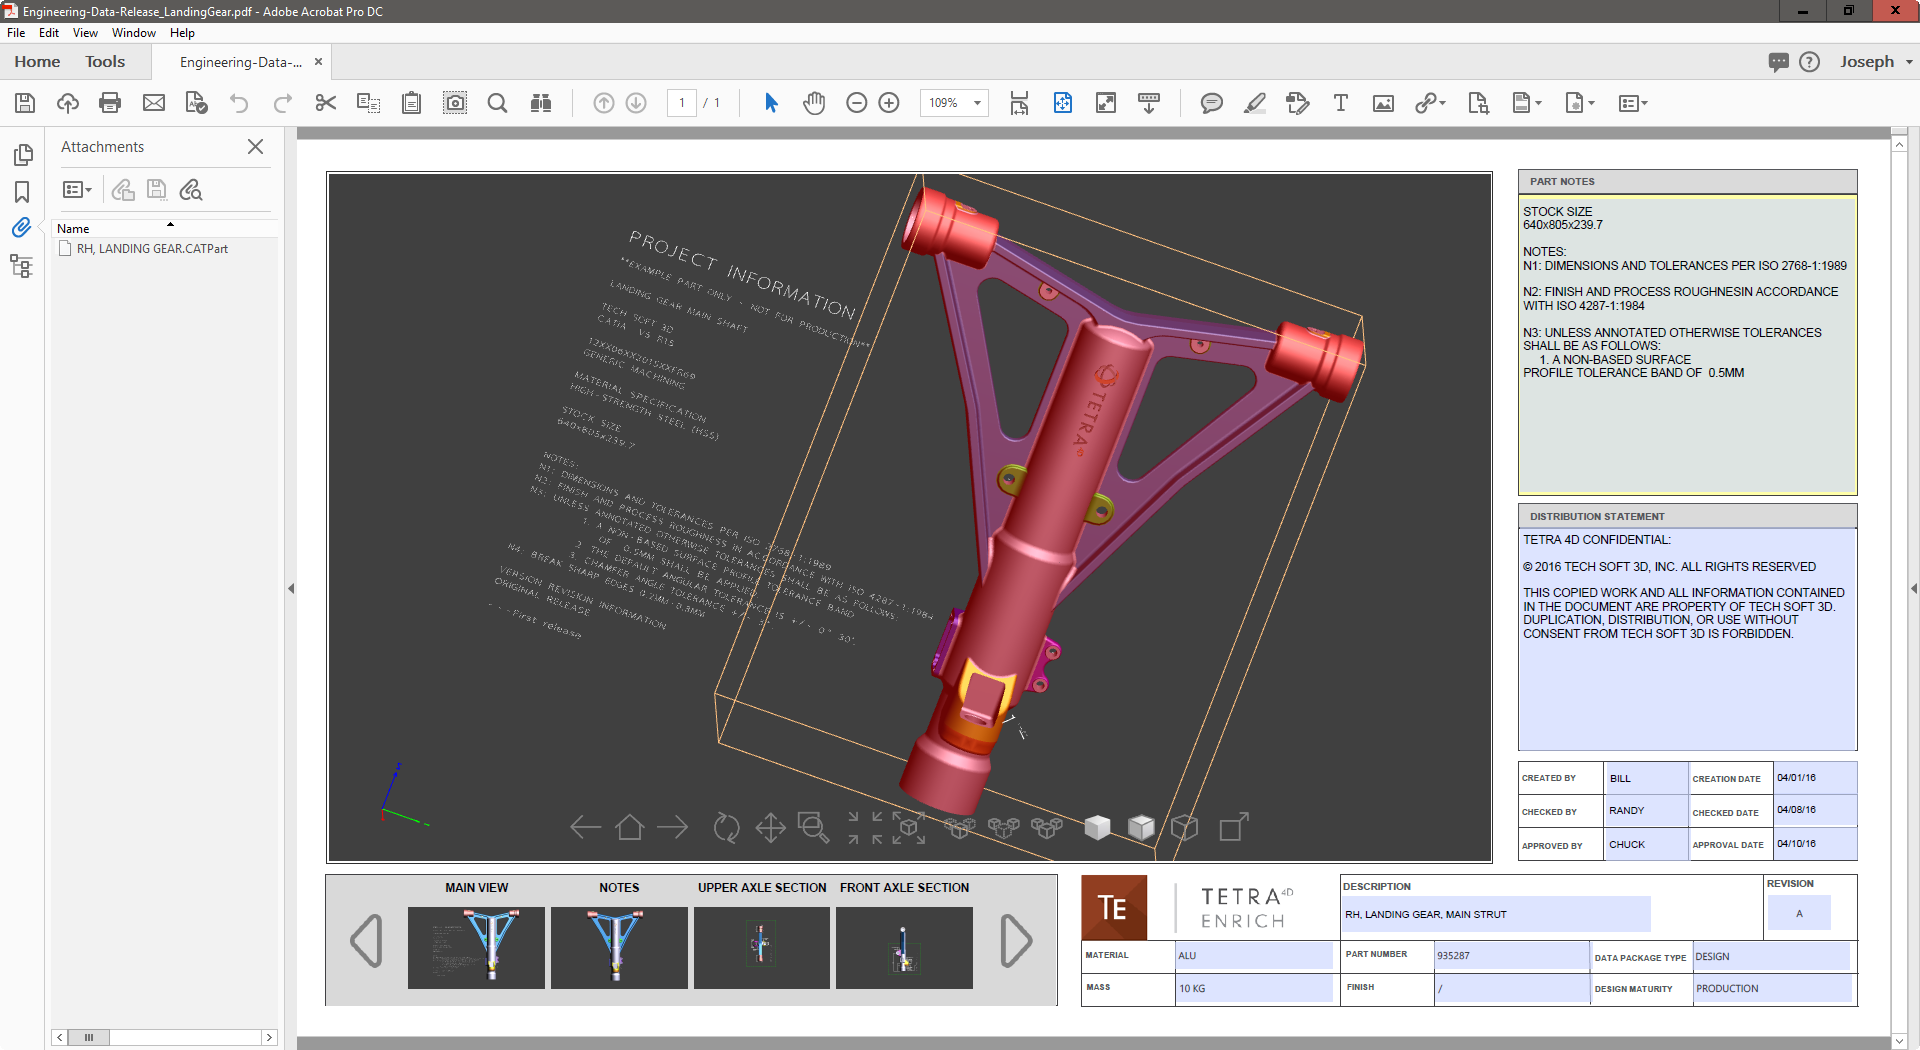 Download 3D-PDF-Engineering-Data-Release